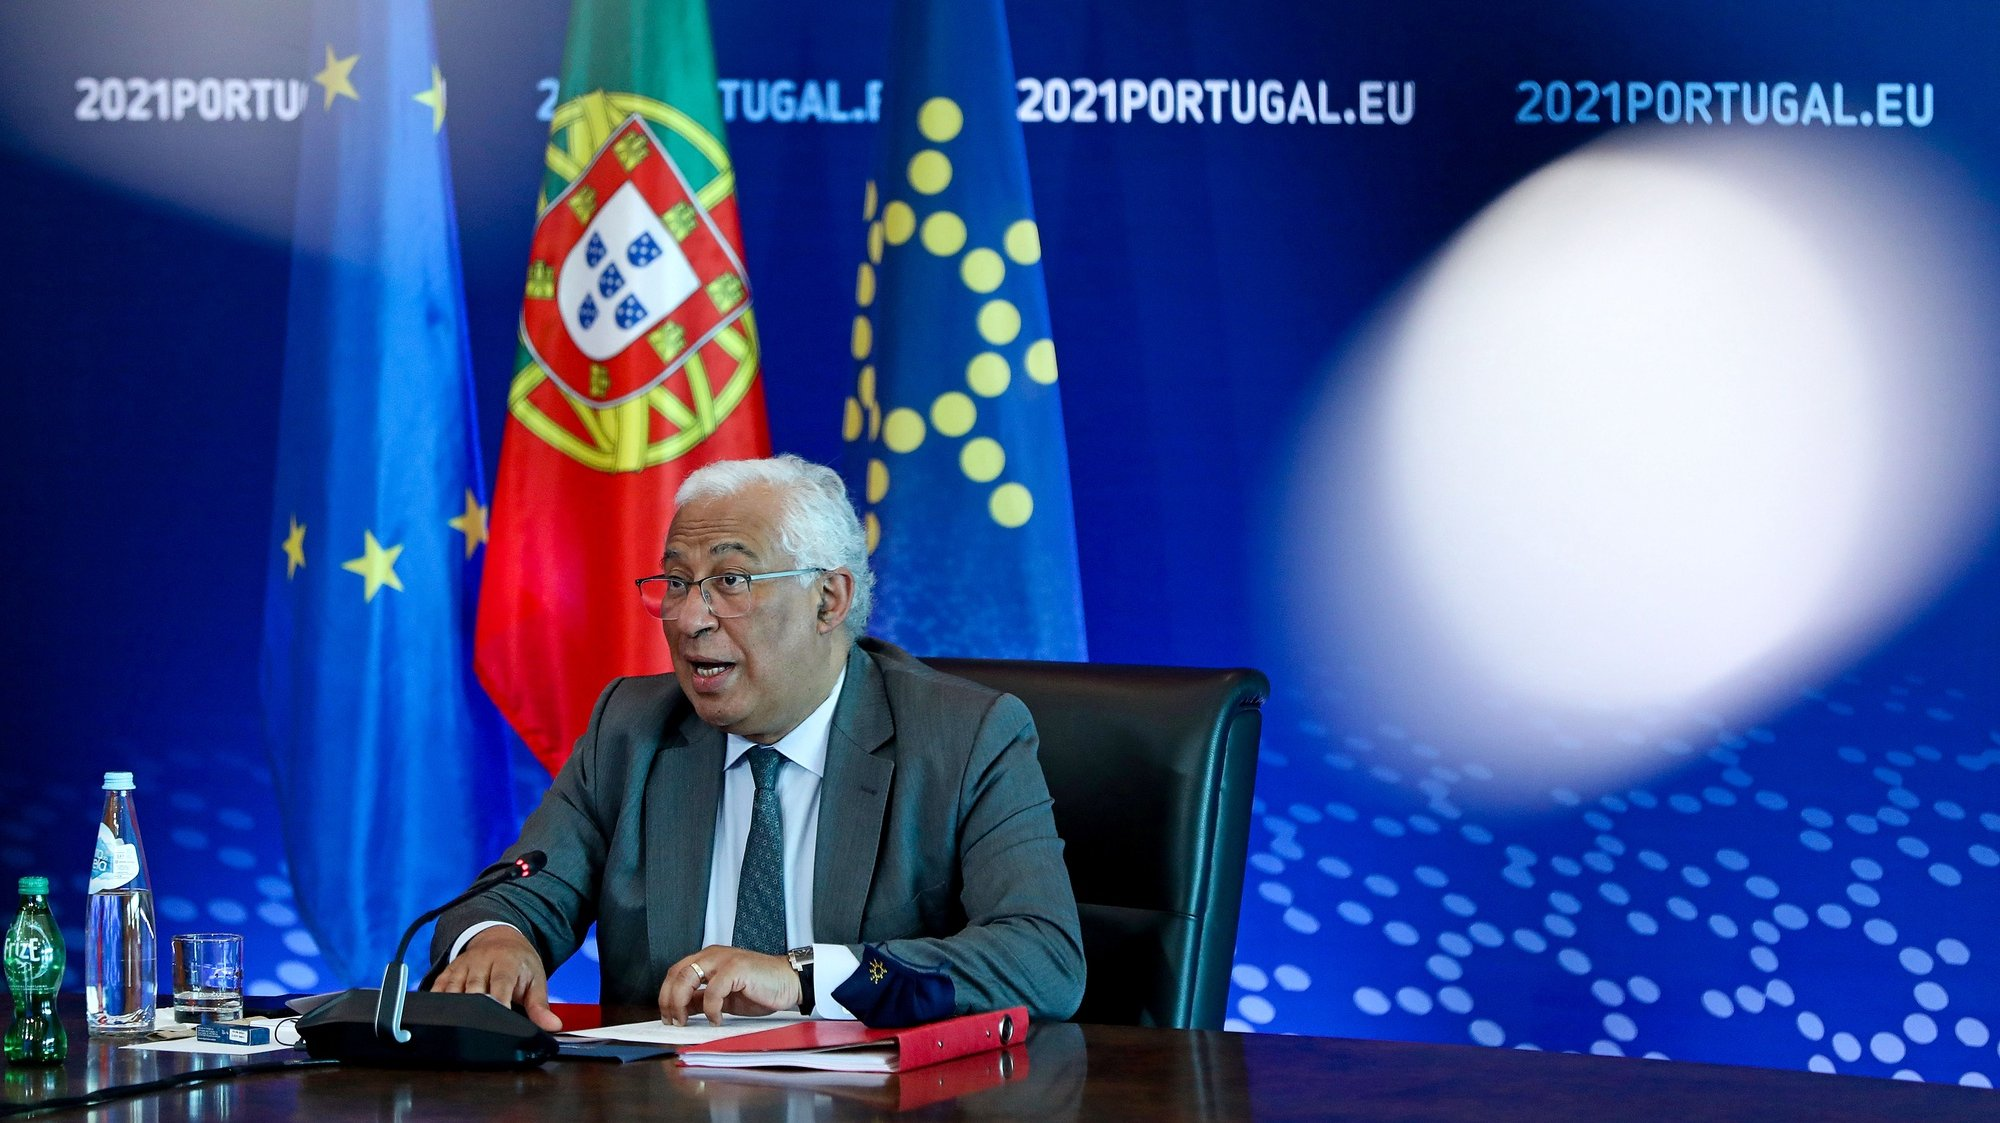 Portuguese Prime Minister Antonio Costa arrives to attend a video conference of the members of the European Council to discuss the current situation of the COVID-19 pandemic, preparedness for health threats, security and defence, and relations with the Southern Neighbourhood, in Lisbon, Portugal, 25 February 2021. ANTONIO PEDRO SANTOS/LUSA